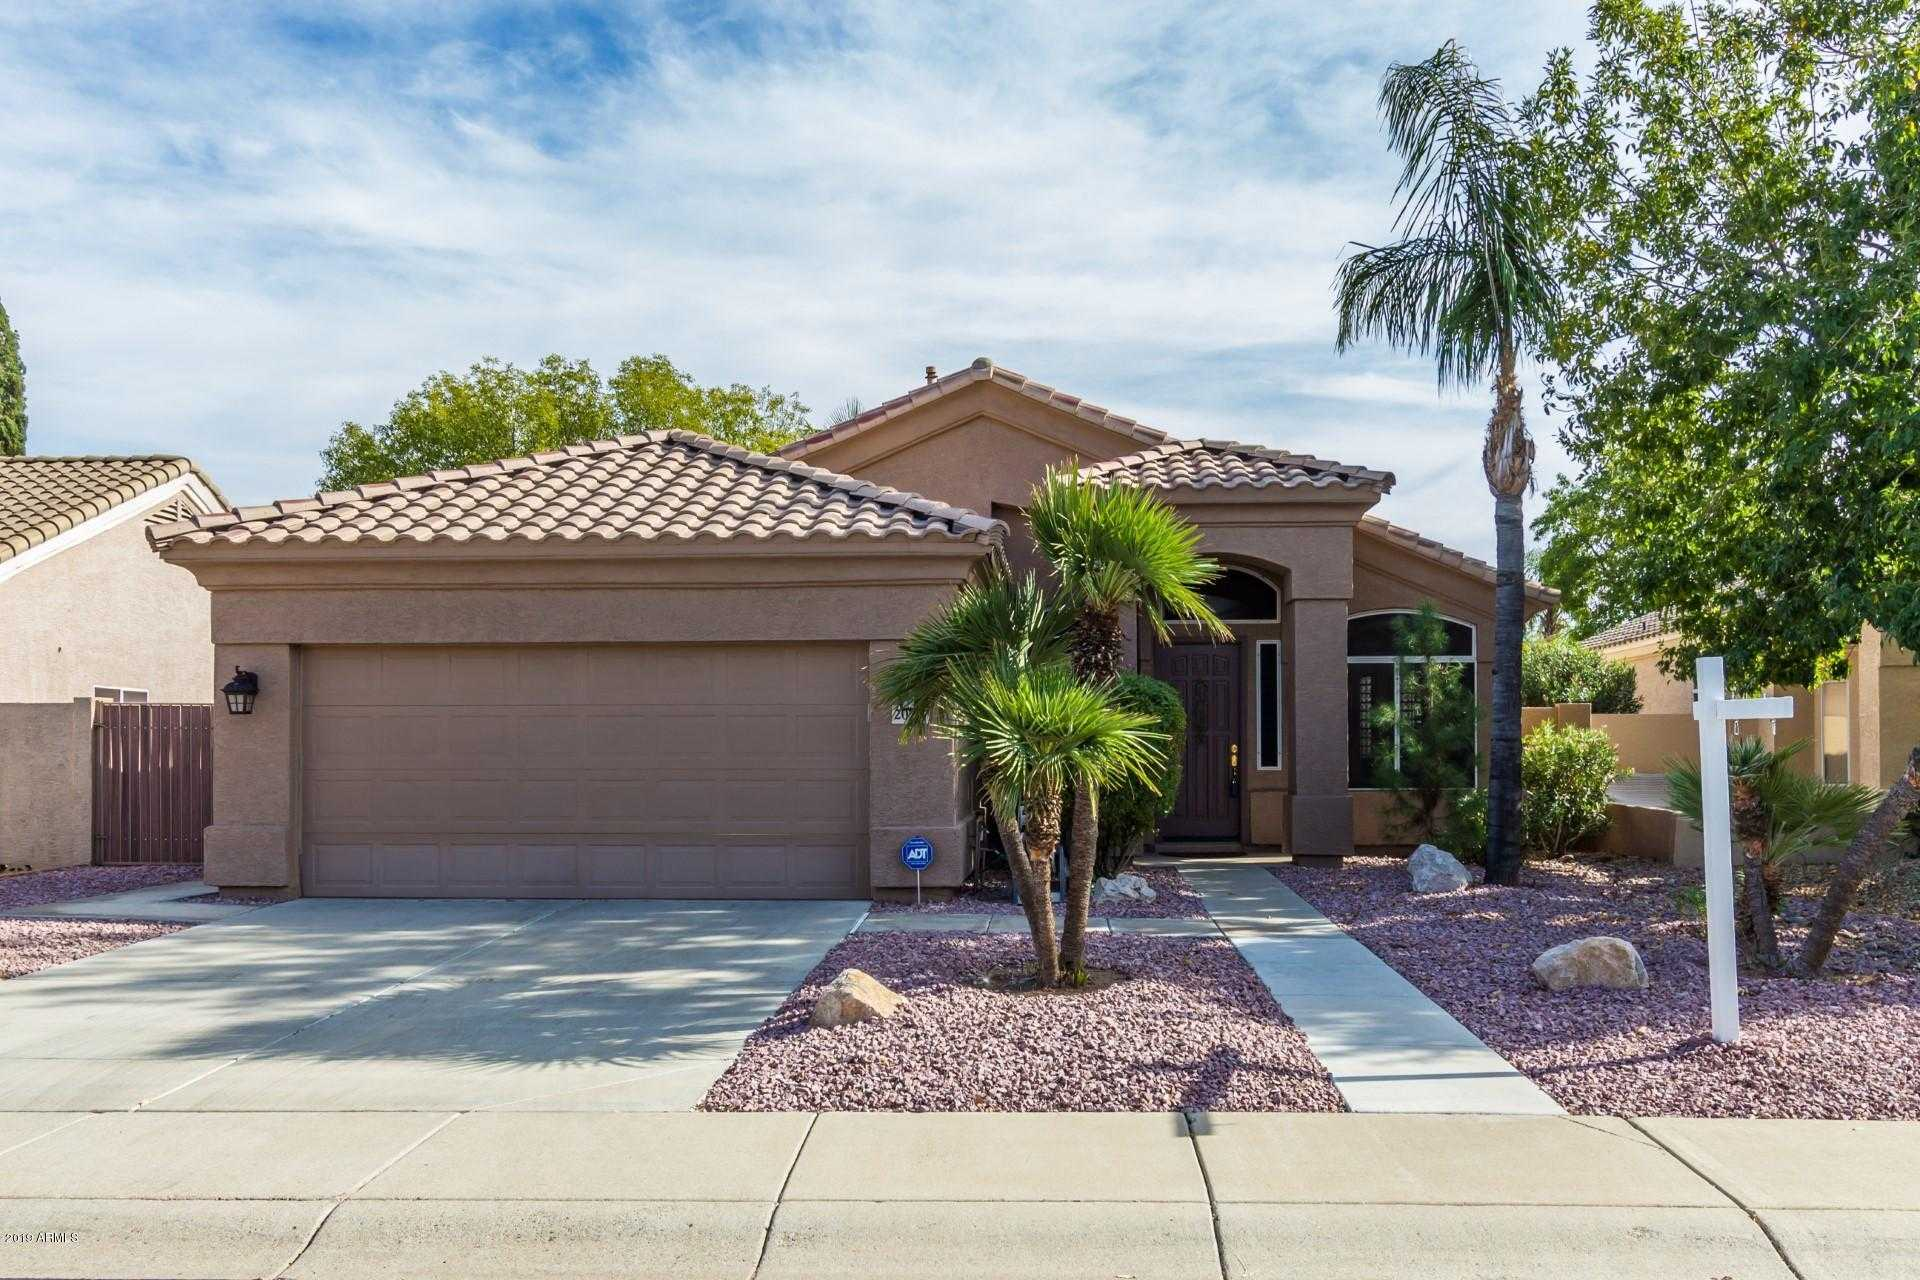 $365,000 - 3Br/2Ba - Home for Sale in Tuscany Point Phase Iii, Glendale